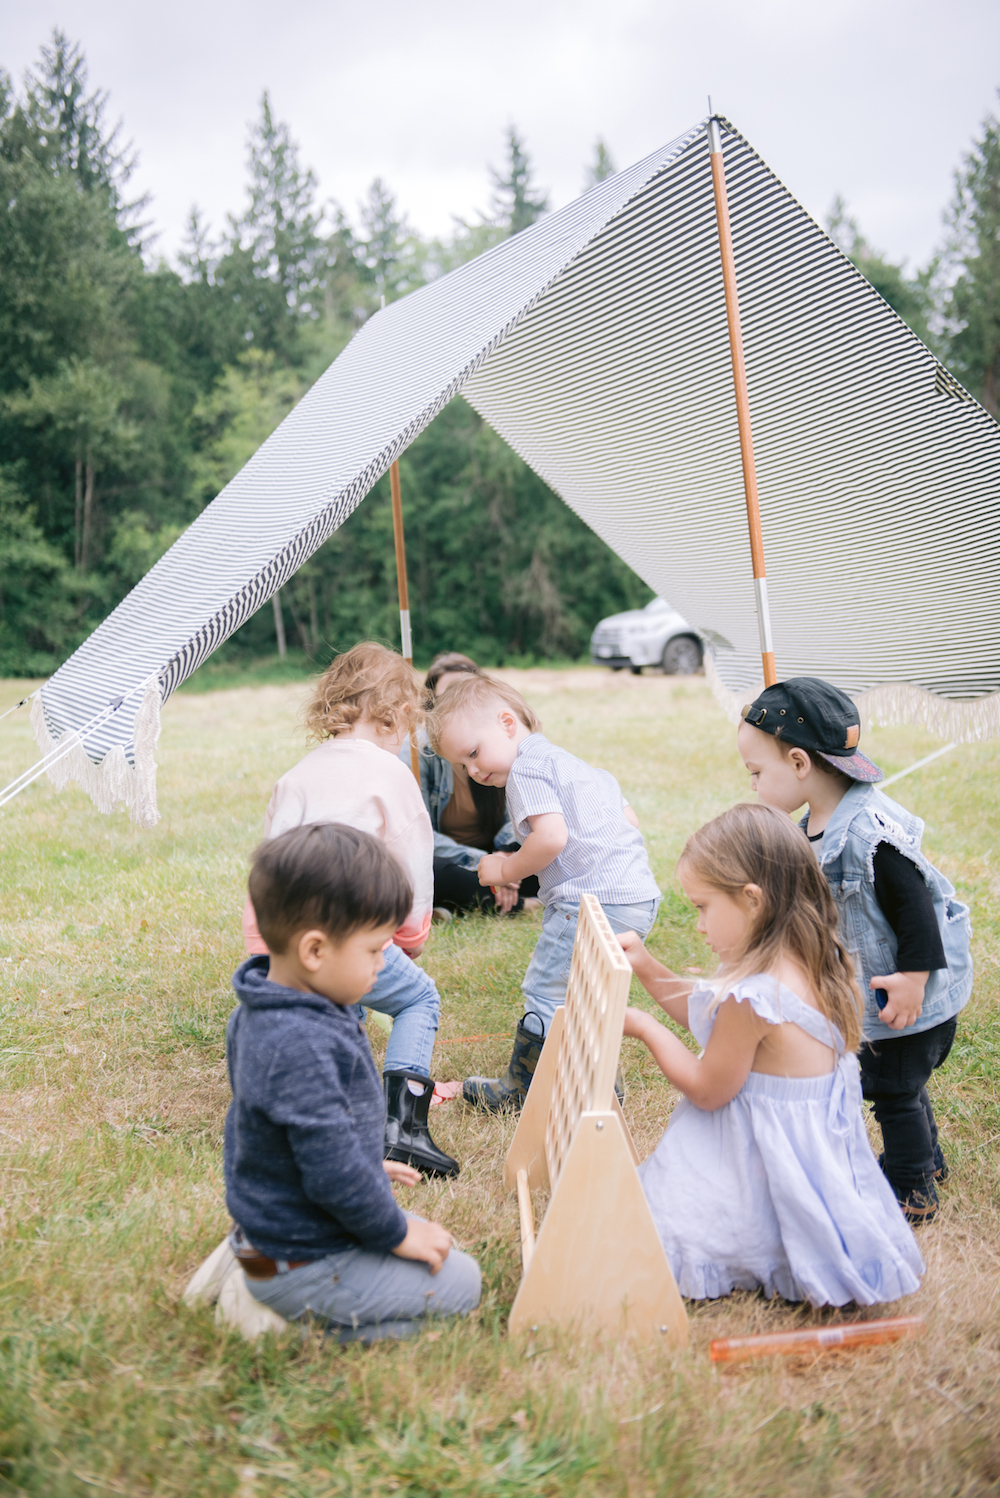 kids playing connect four with a striped tent in the back